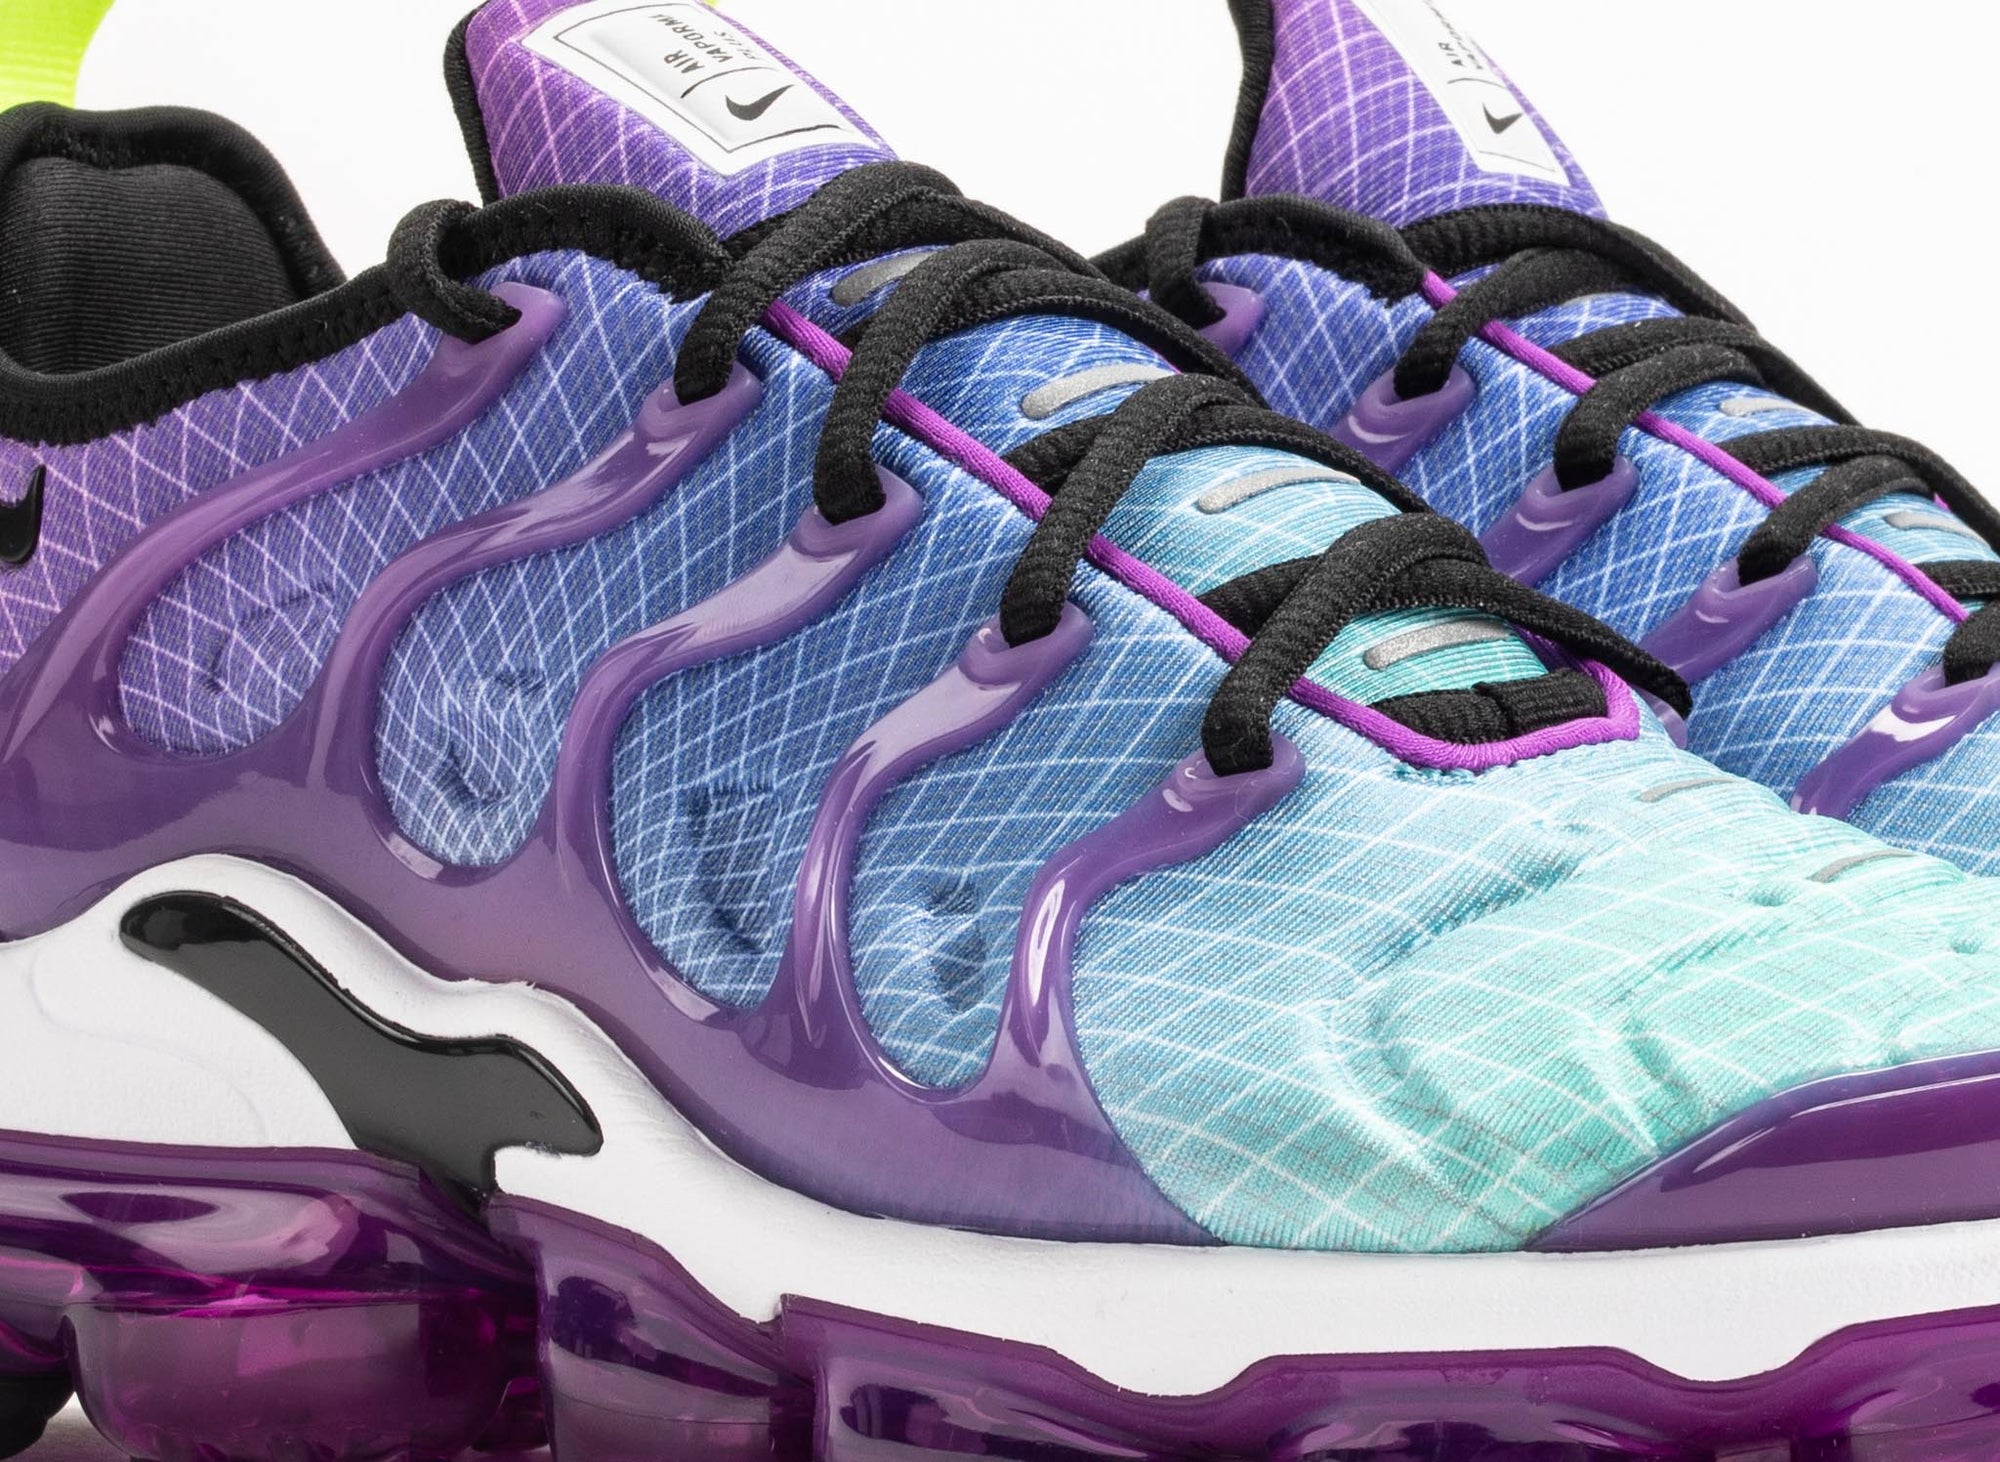 premium selection ba3c9 71de5 Women's Nike Air Vapormax Plus 'Hyper Violet'